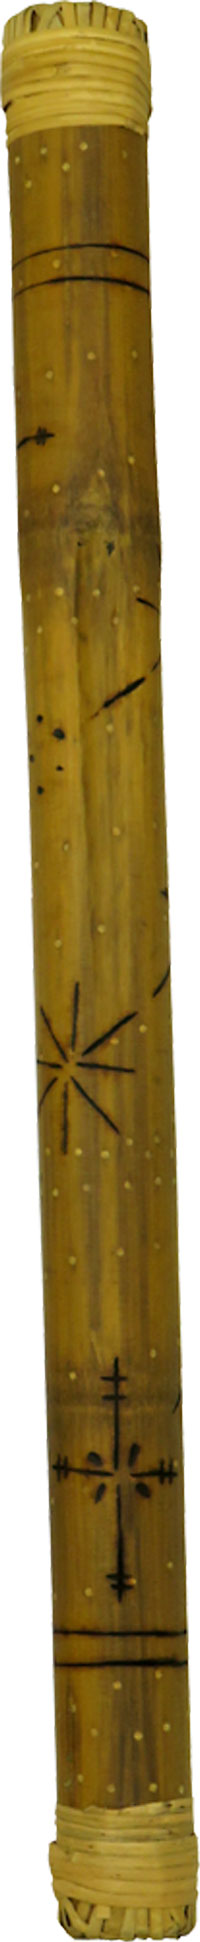 Atlas AP-L710 Bamboo Rainstick, 75cm Long Pokerwork designs. Approx 75cm long and 5cm diameter